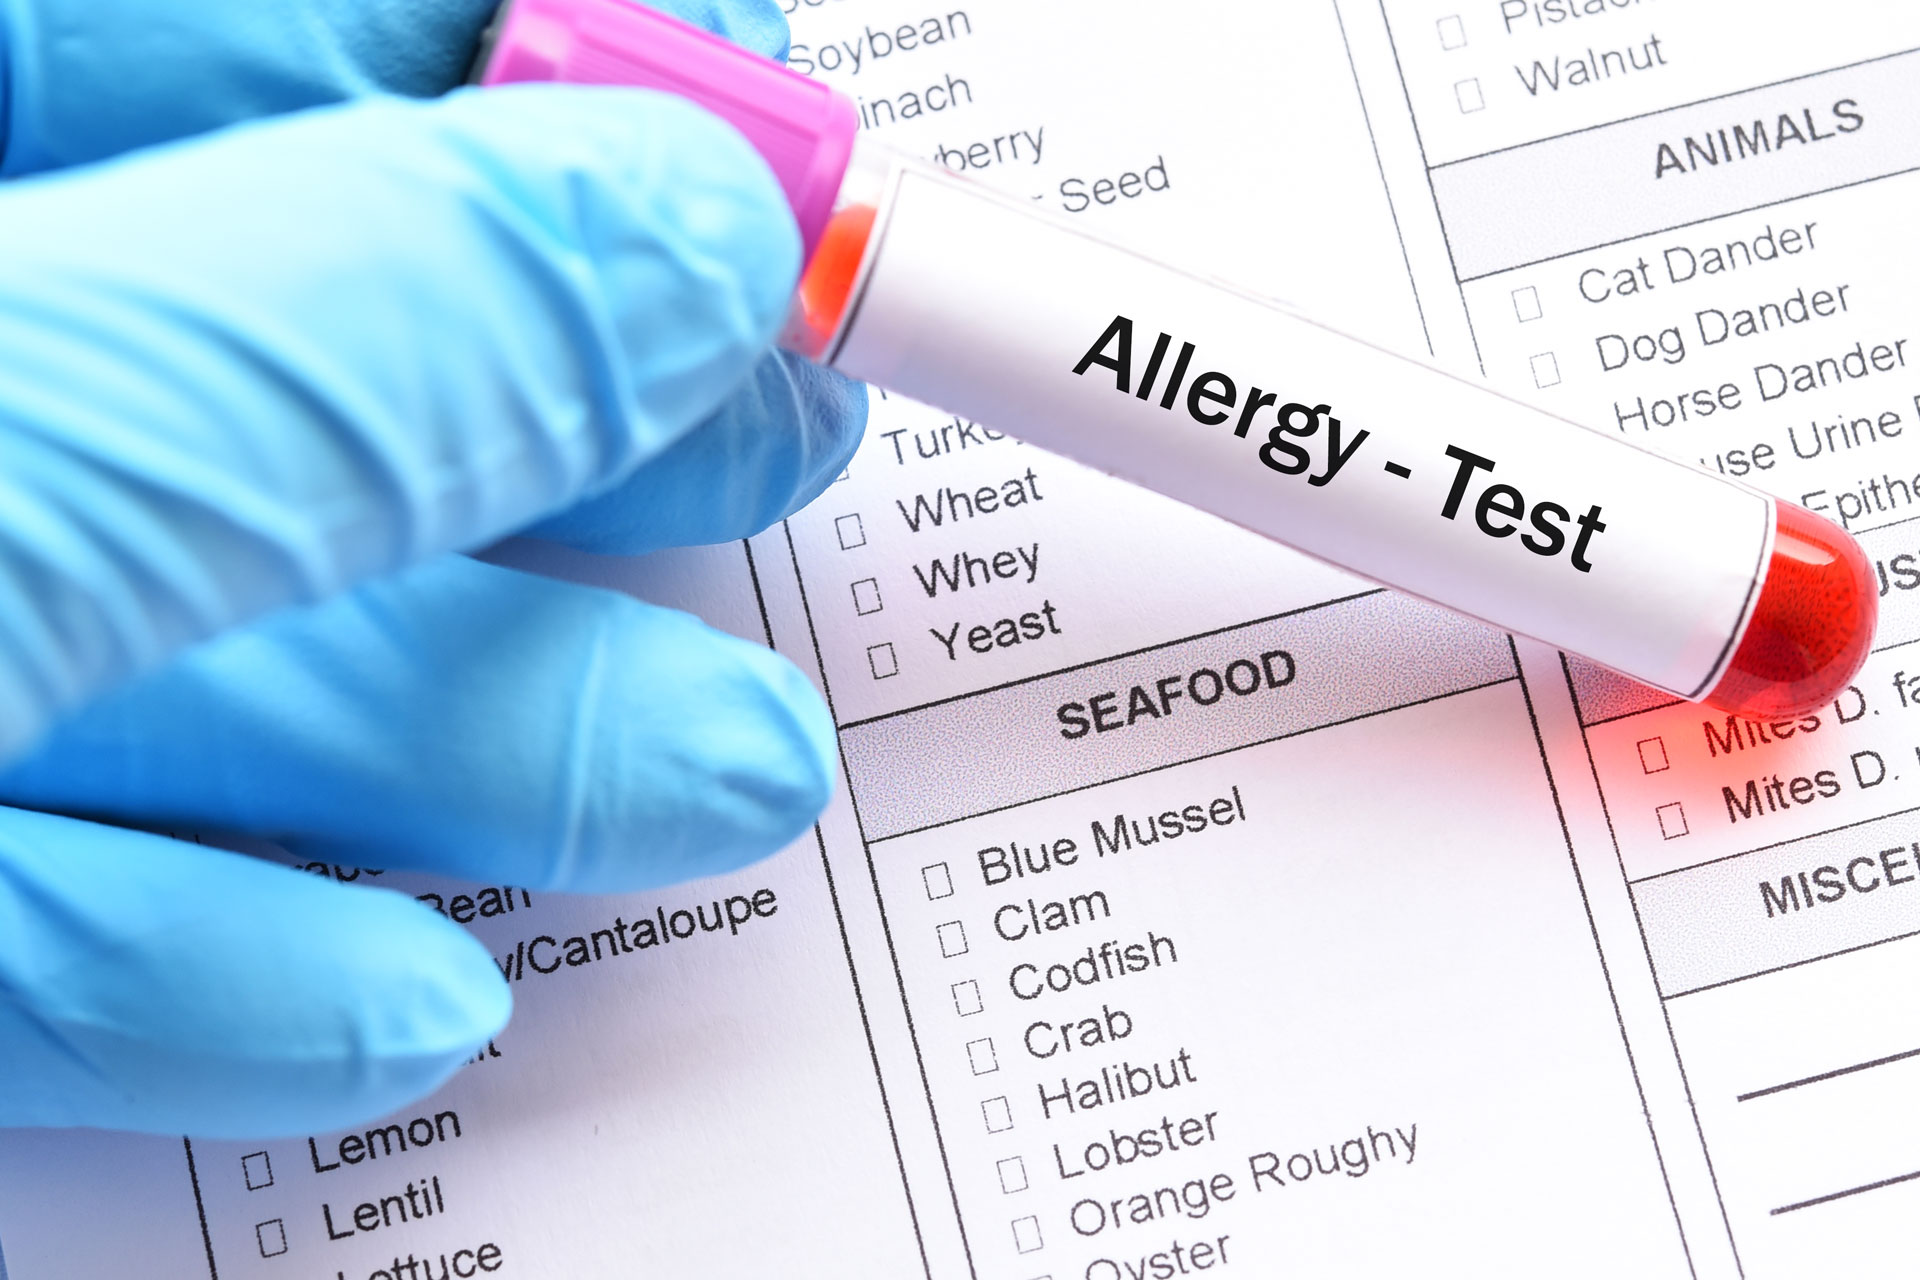 Kansas City Allergy & Asthma - Testing